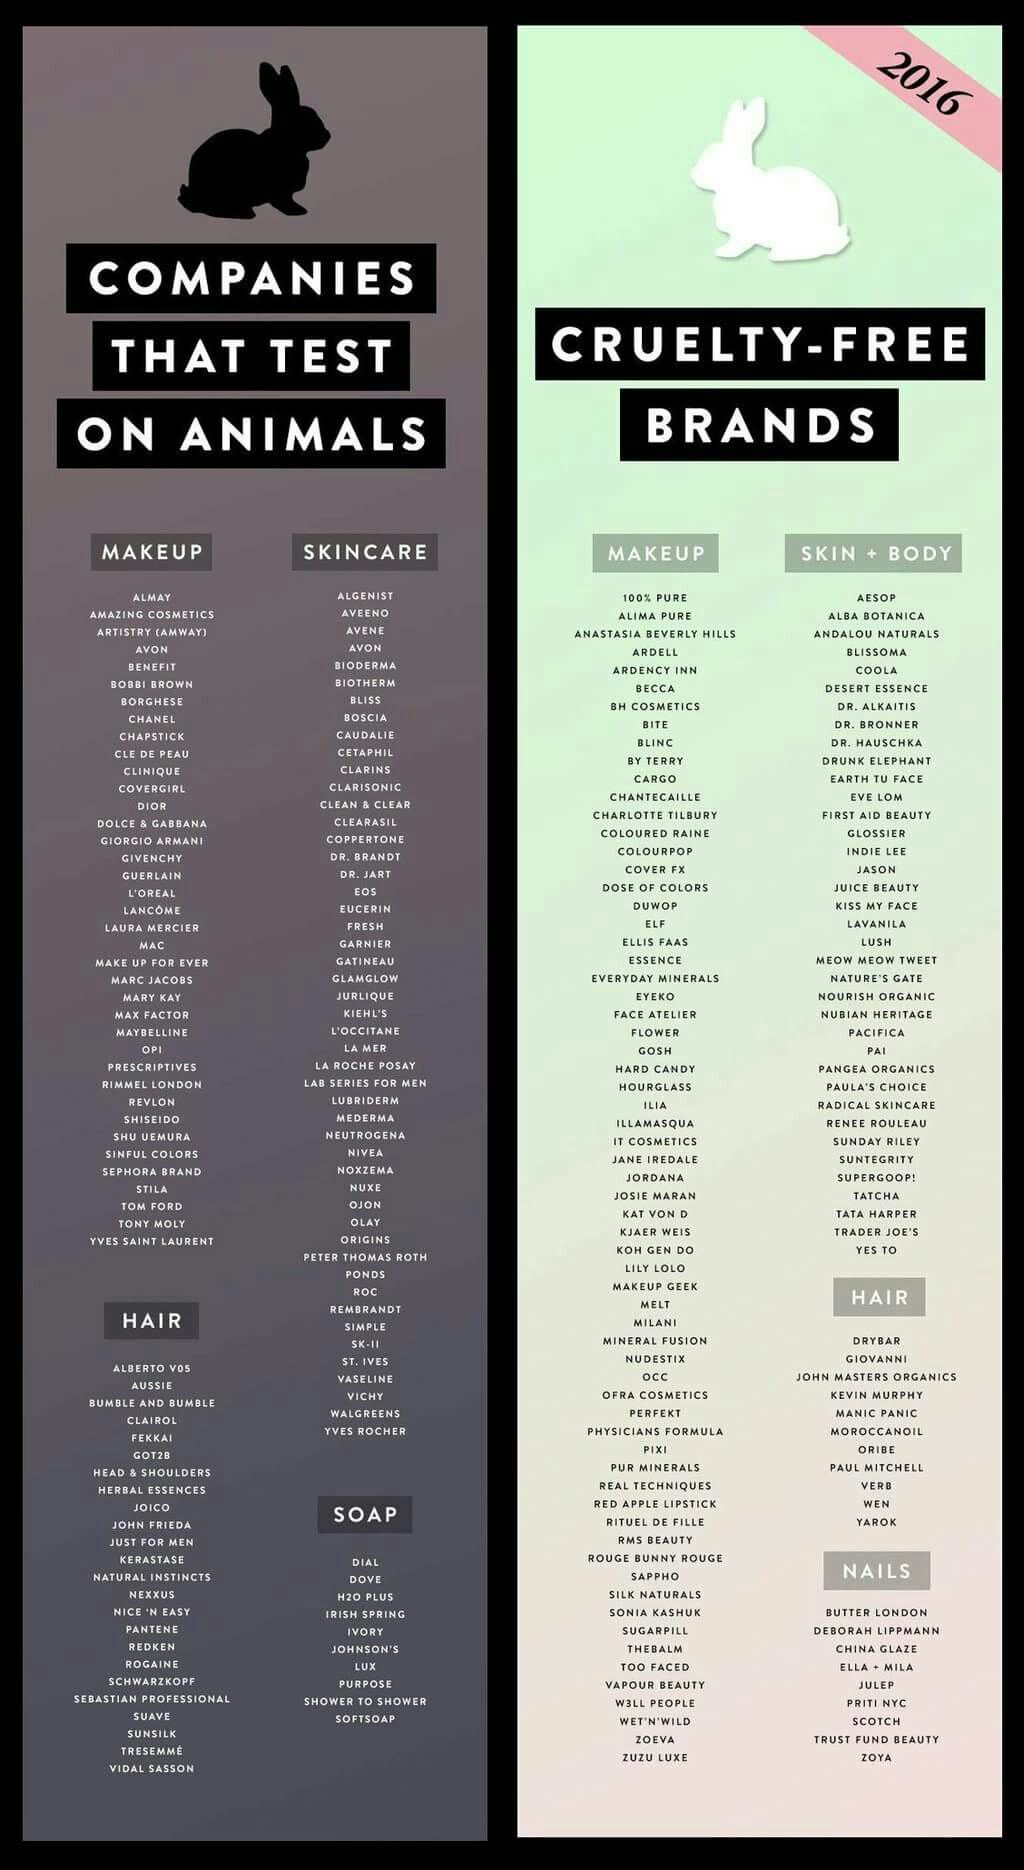 Cruelty Vs Cruelty Free Cruelty Free Brands Cruelty Free Beauty Cruelty Free Makeup